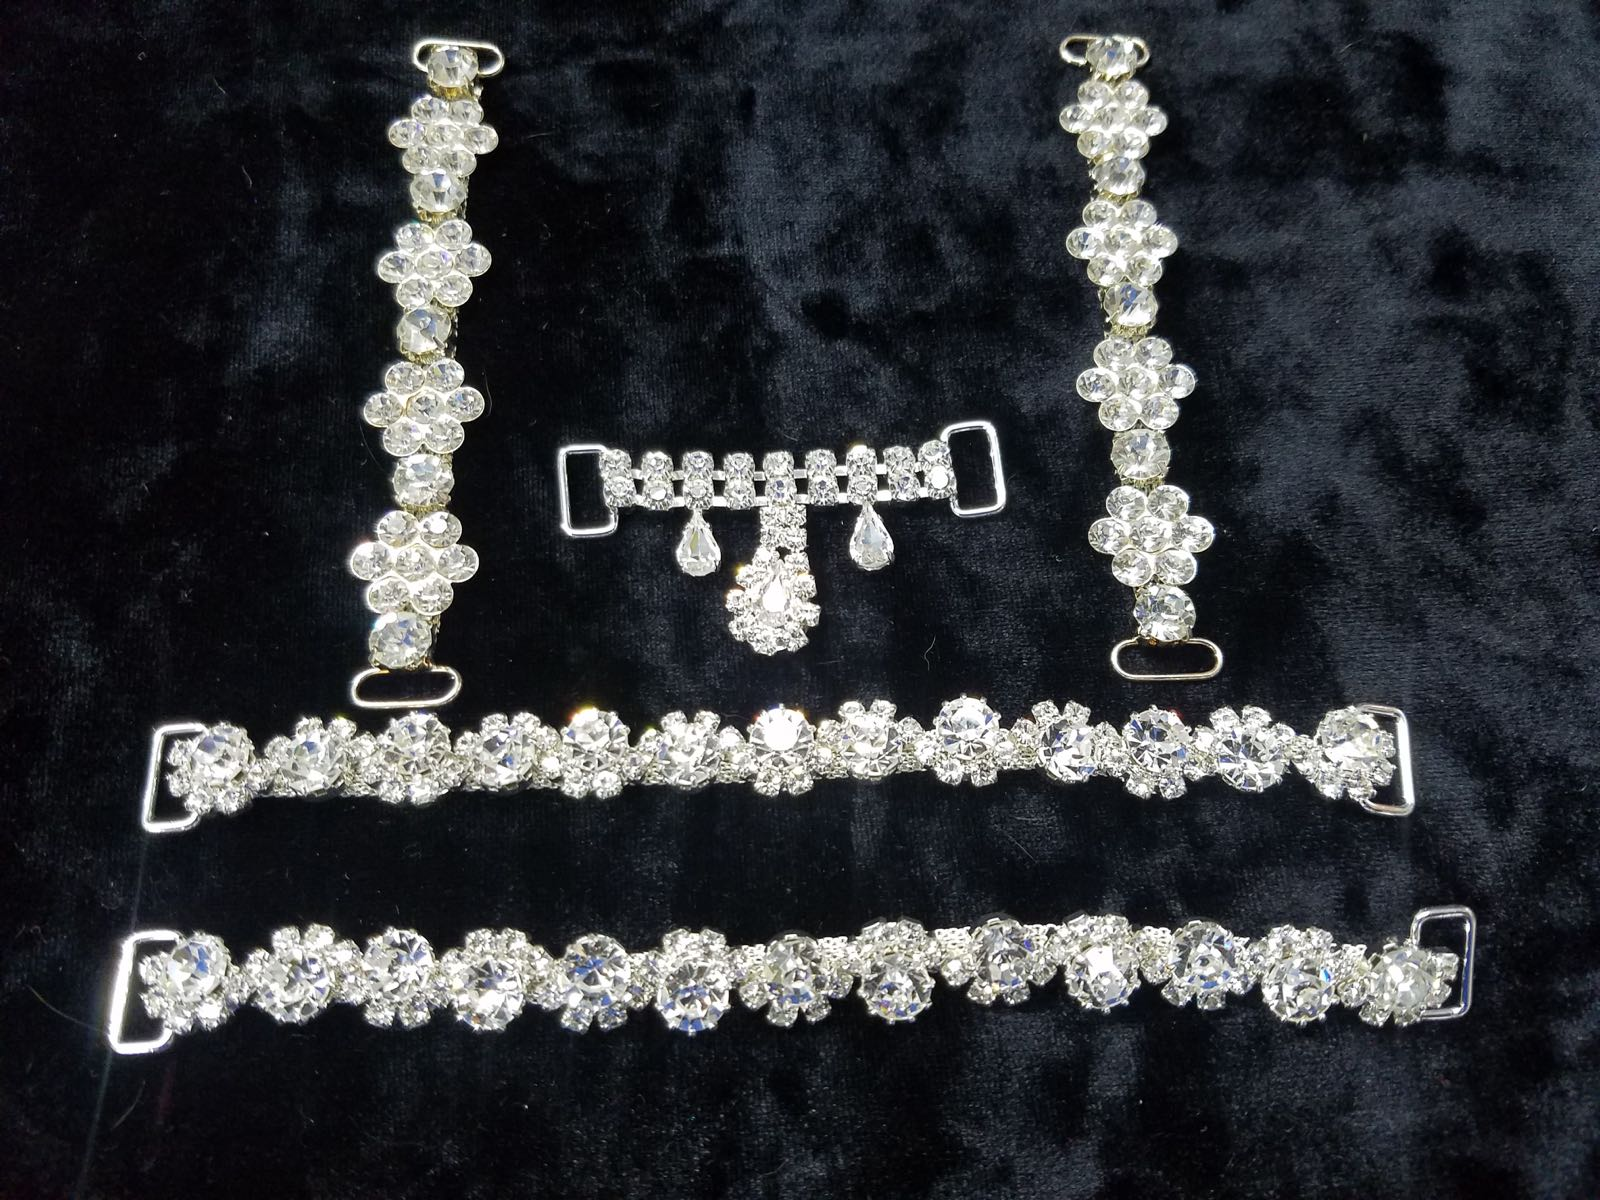 Set M, Silver with clear crystals, $105.00